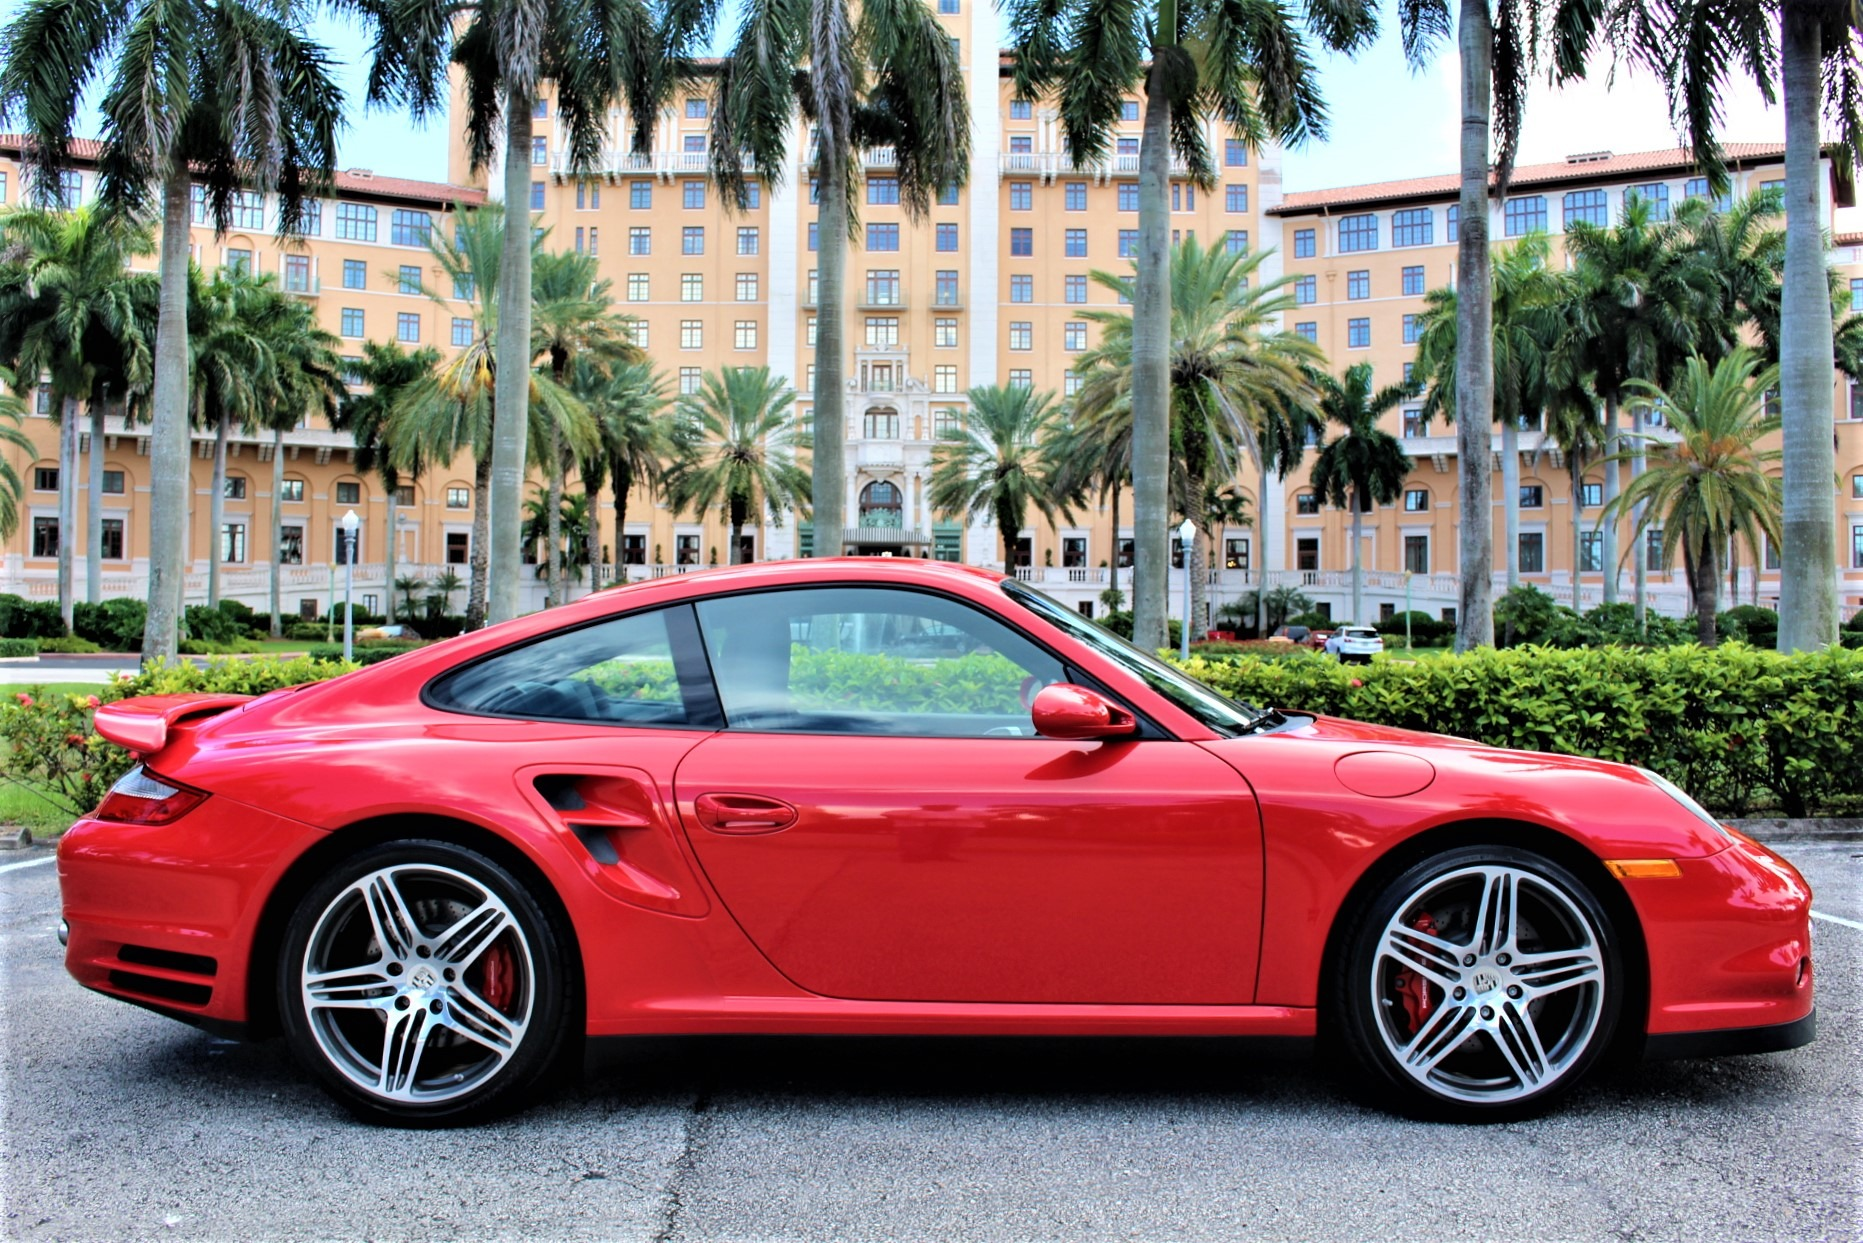 Used 2007 Porsche 911 Turbo for sale $85,850 at The Gables Sports Cars in Miami FL 33146 1